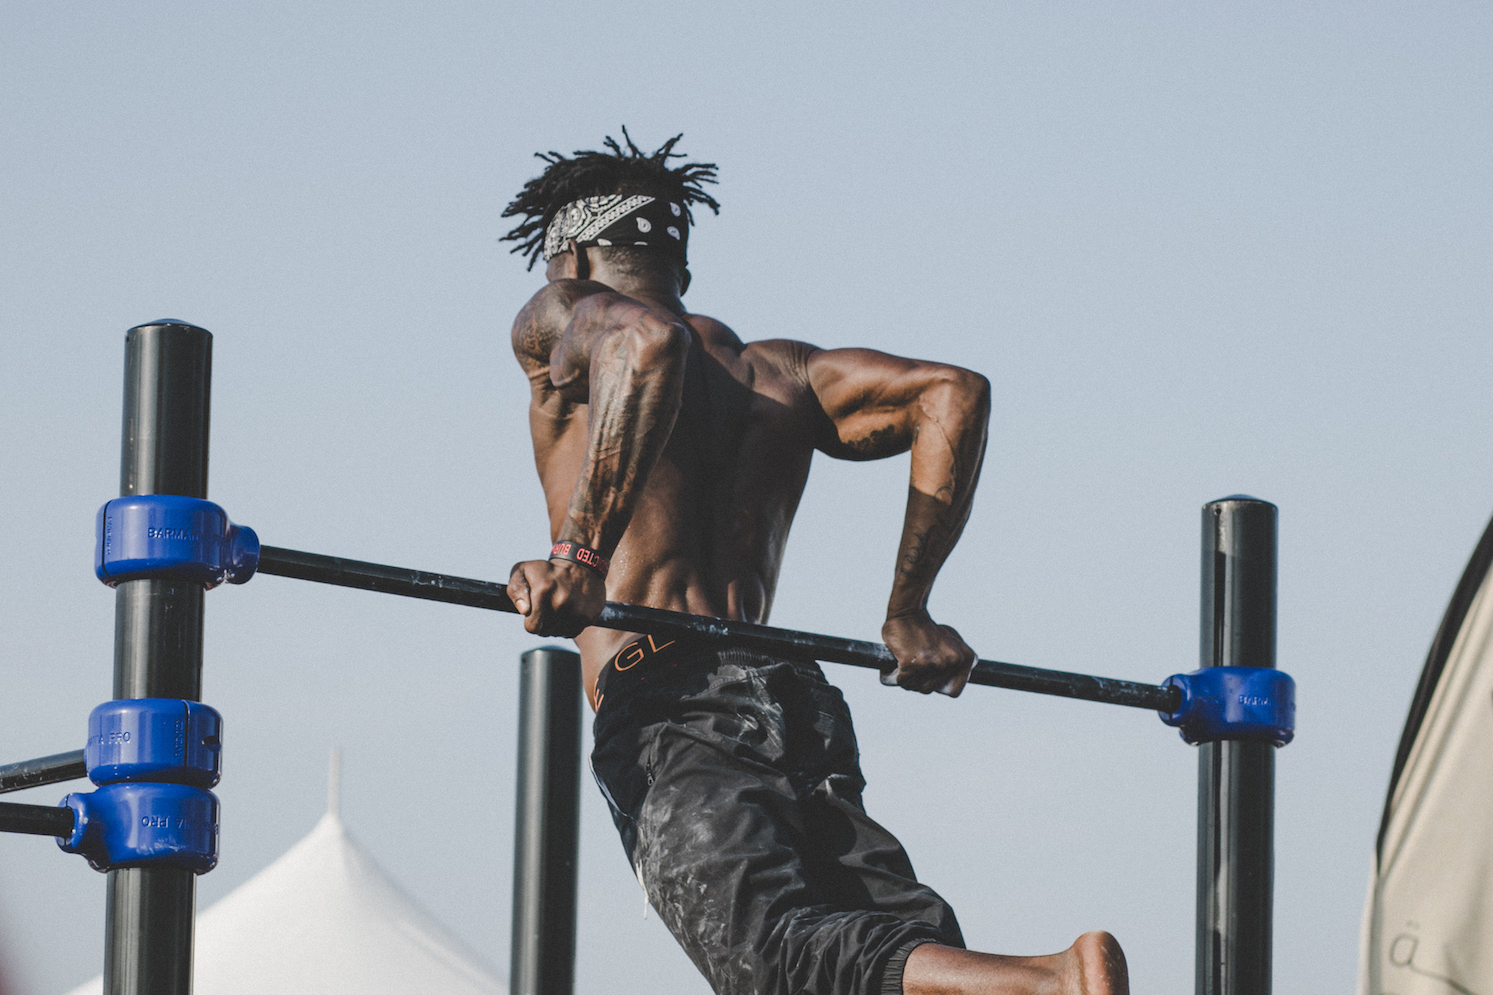 pull up bar callisthenics athlete